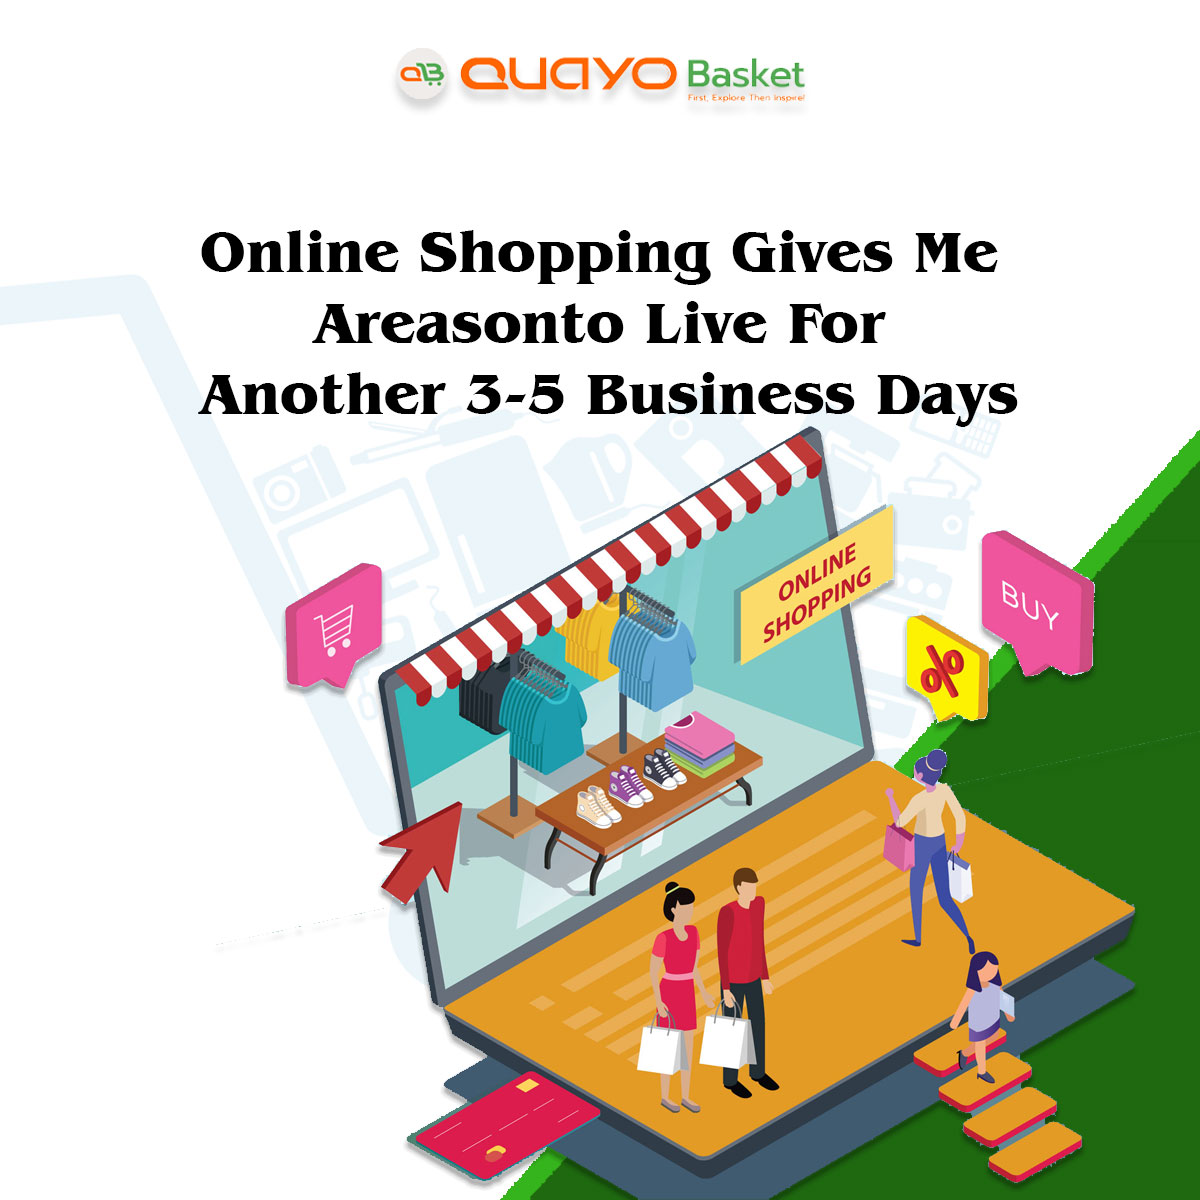 Online Grocery Shopping Store in patna india